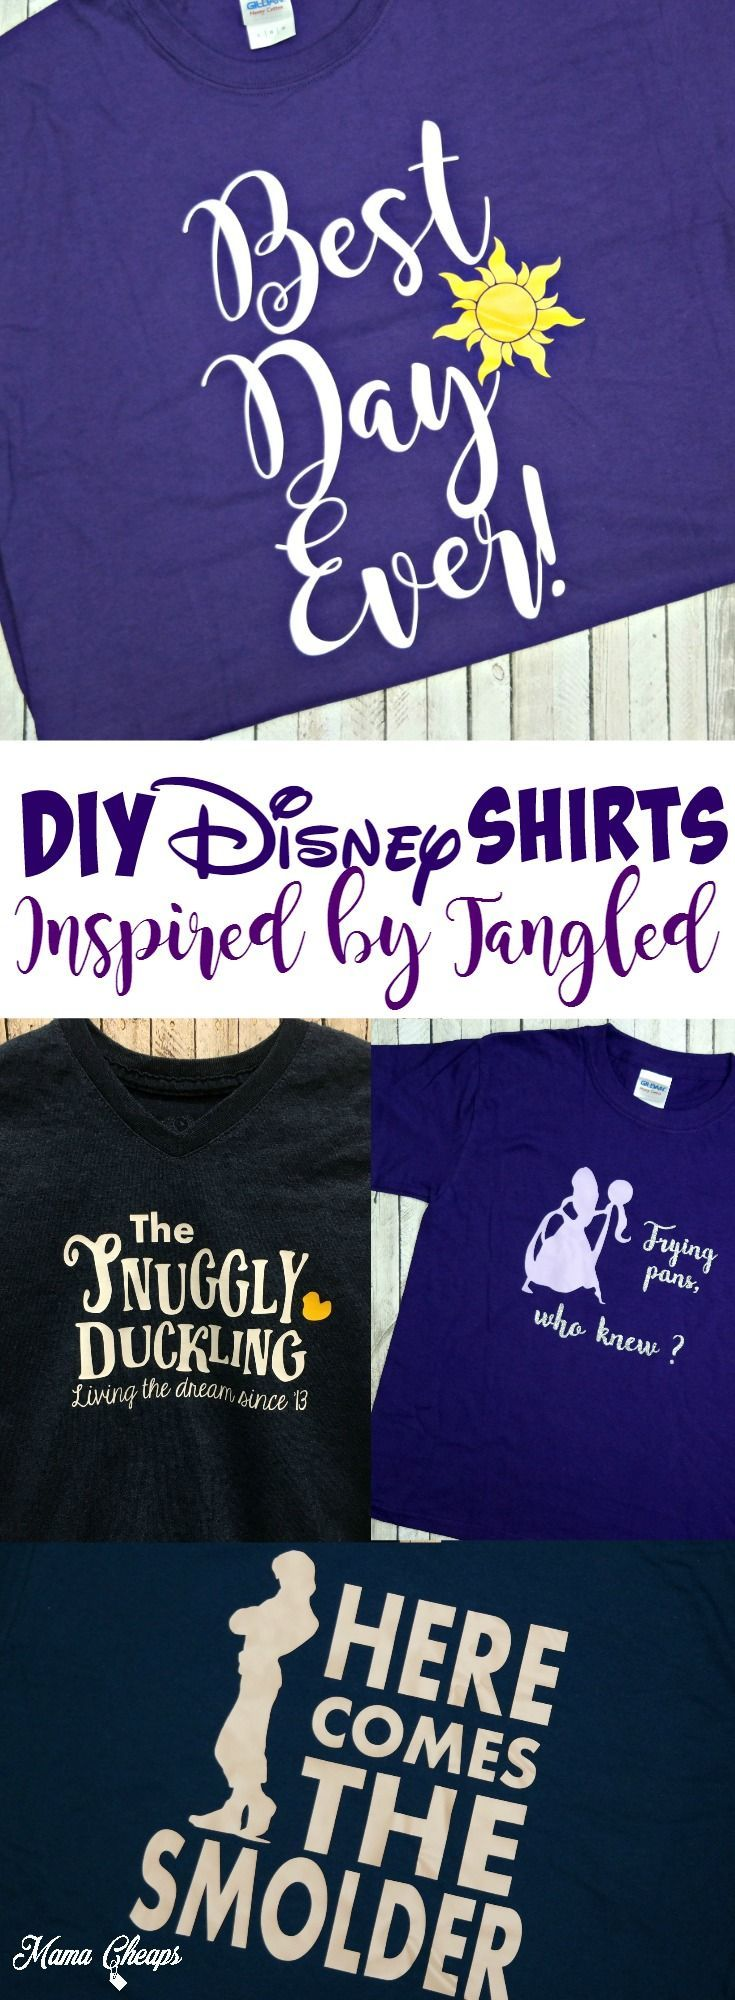 Diy Disney Shirts Inspired By Tangled Movie! Find More Great Disney Diy  Ideas On Mamacheaps